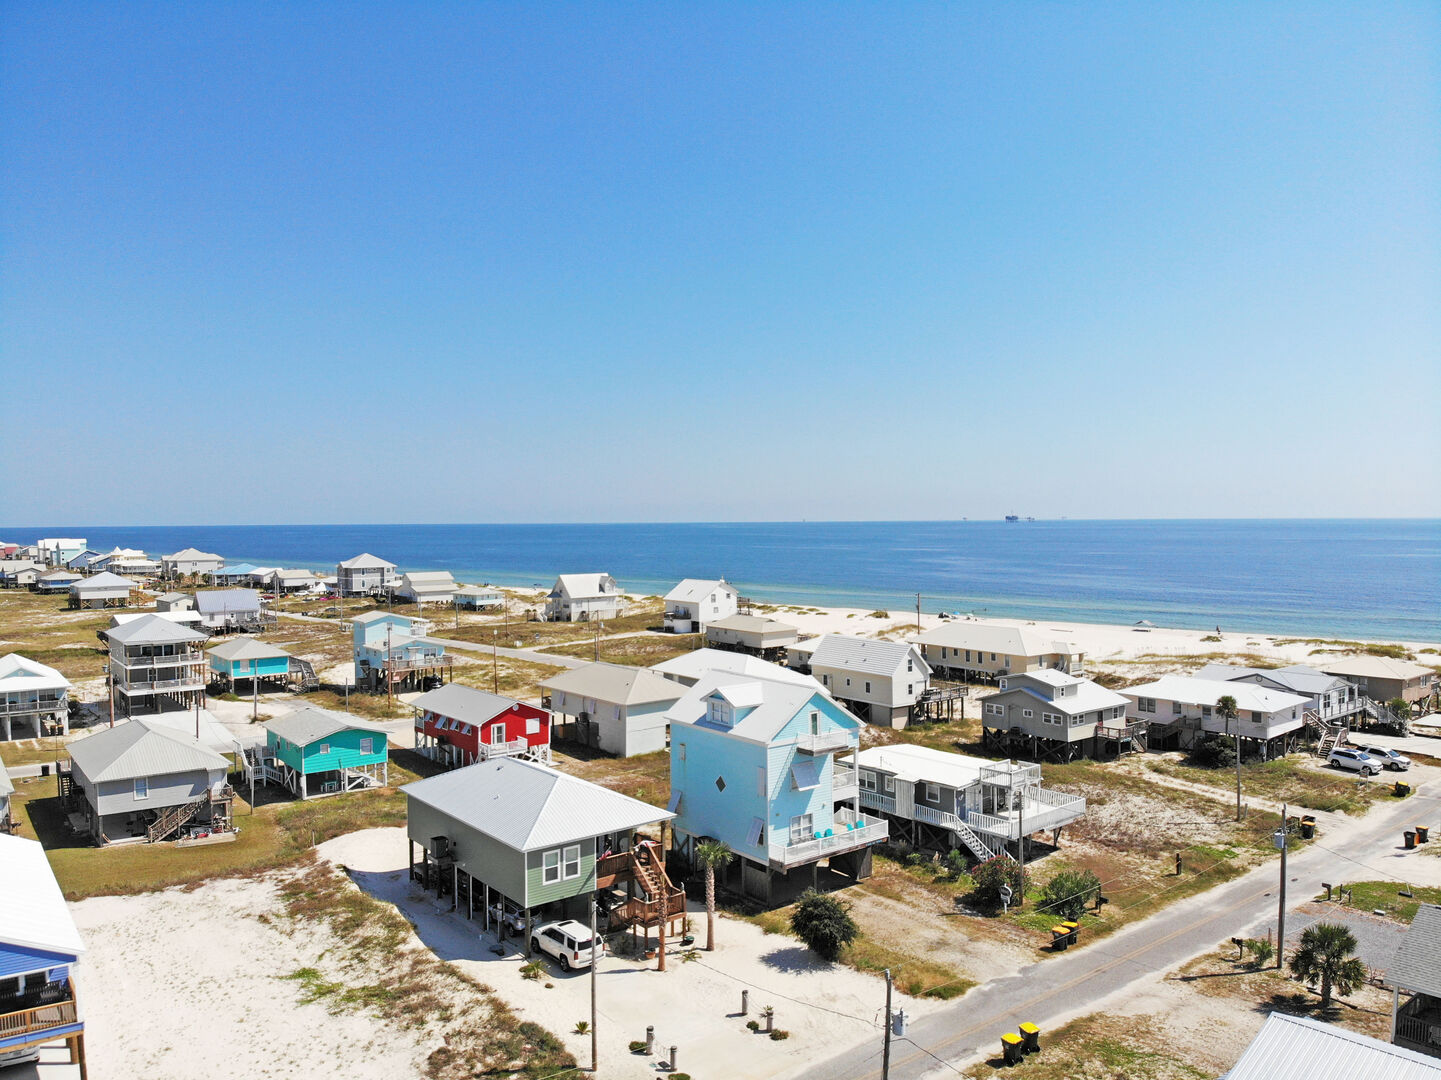 Aerial View of the Neighborhood on the Beach.